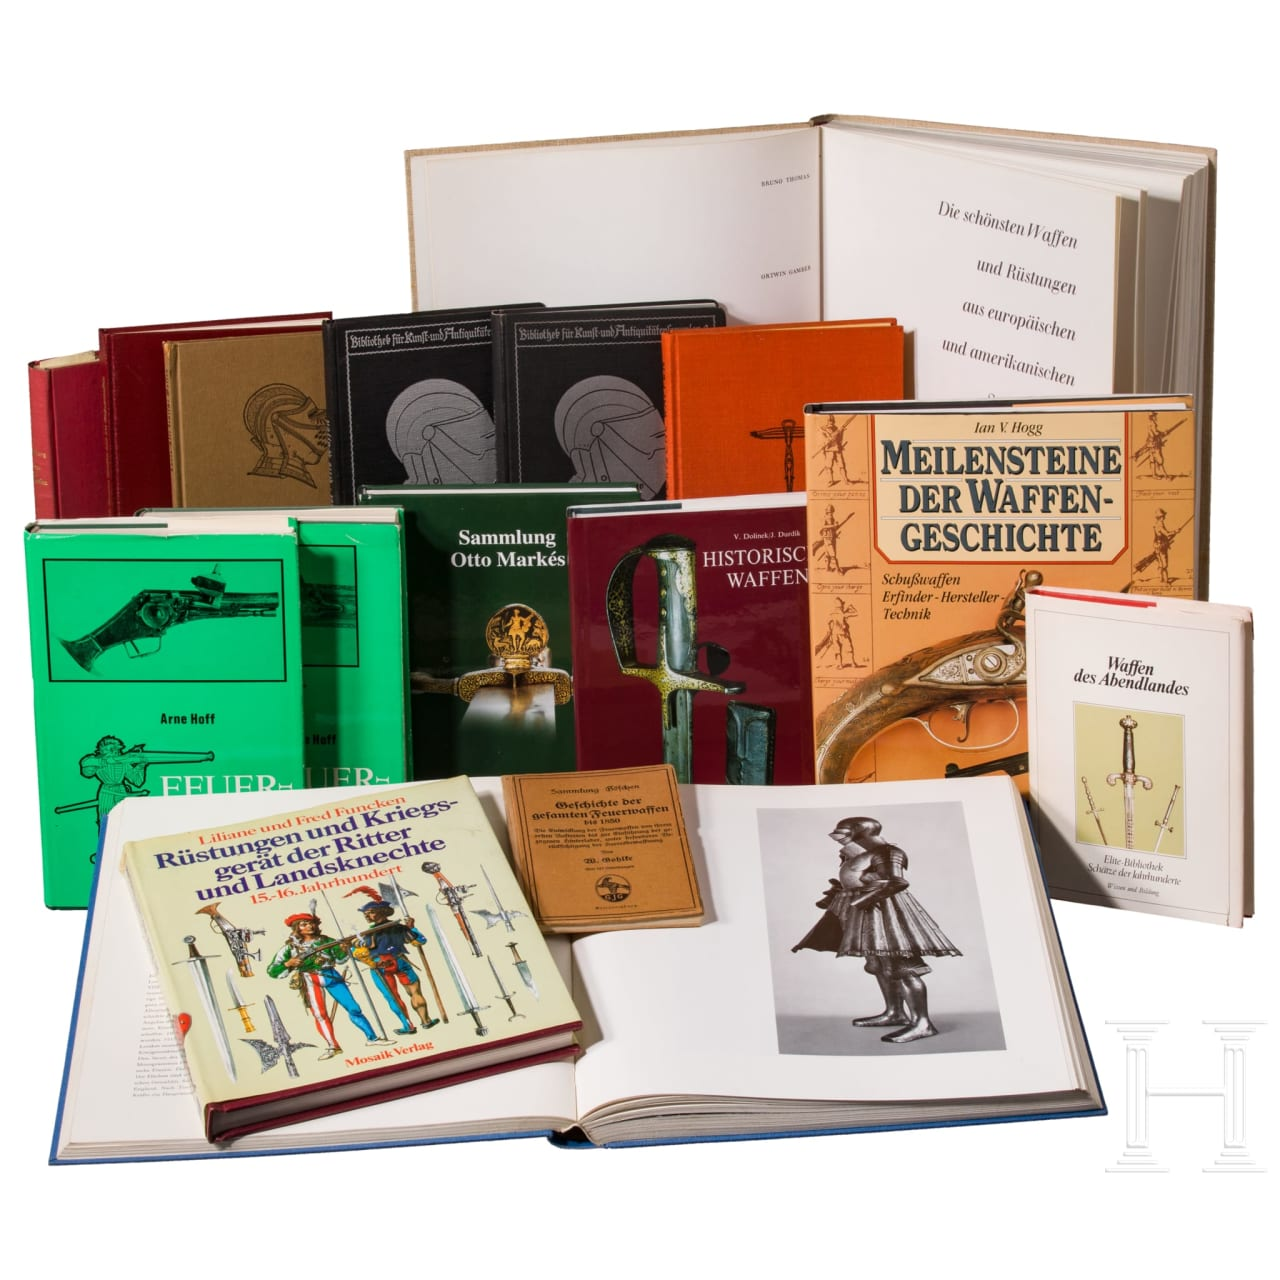 16 volumes on historical weapons science